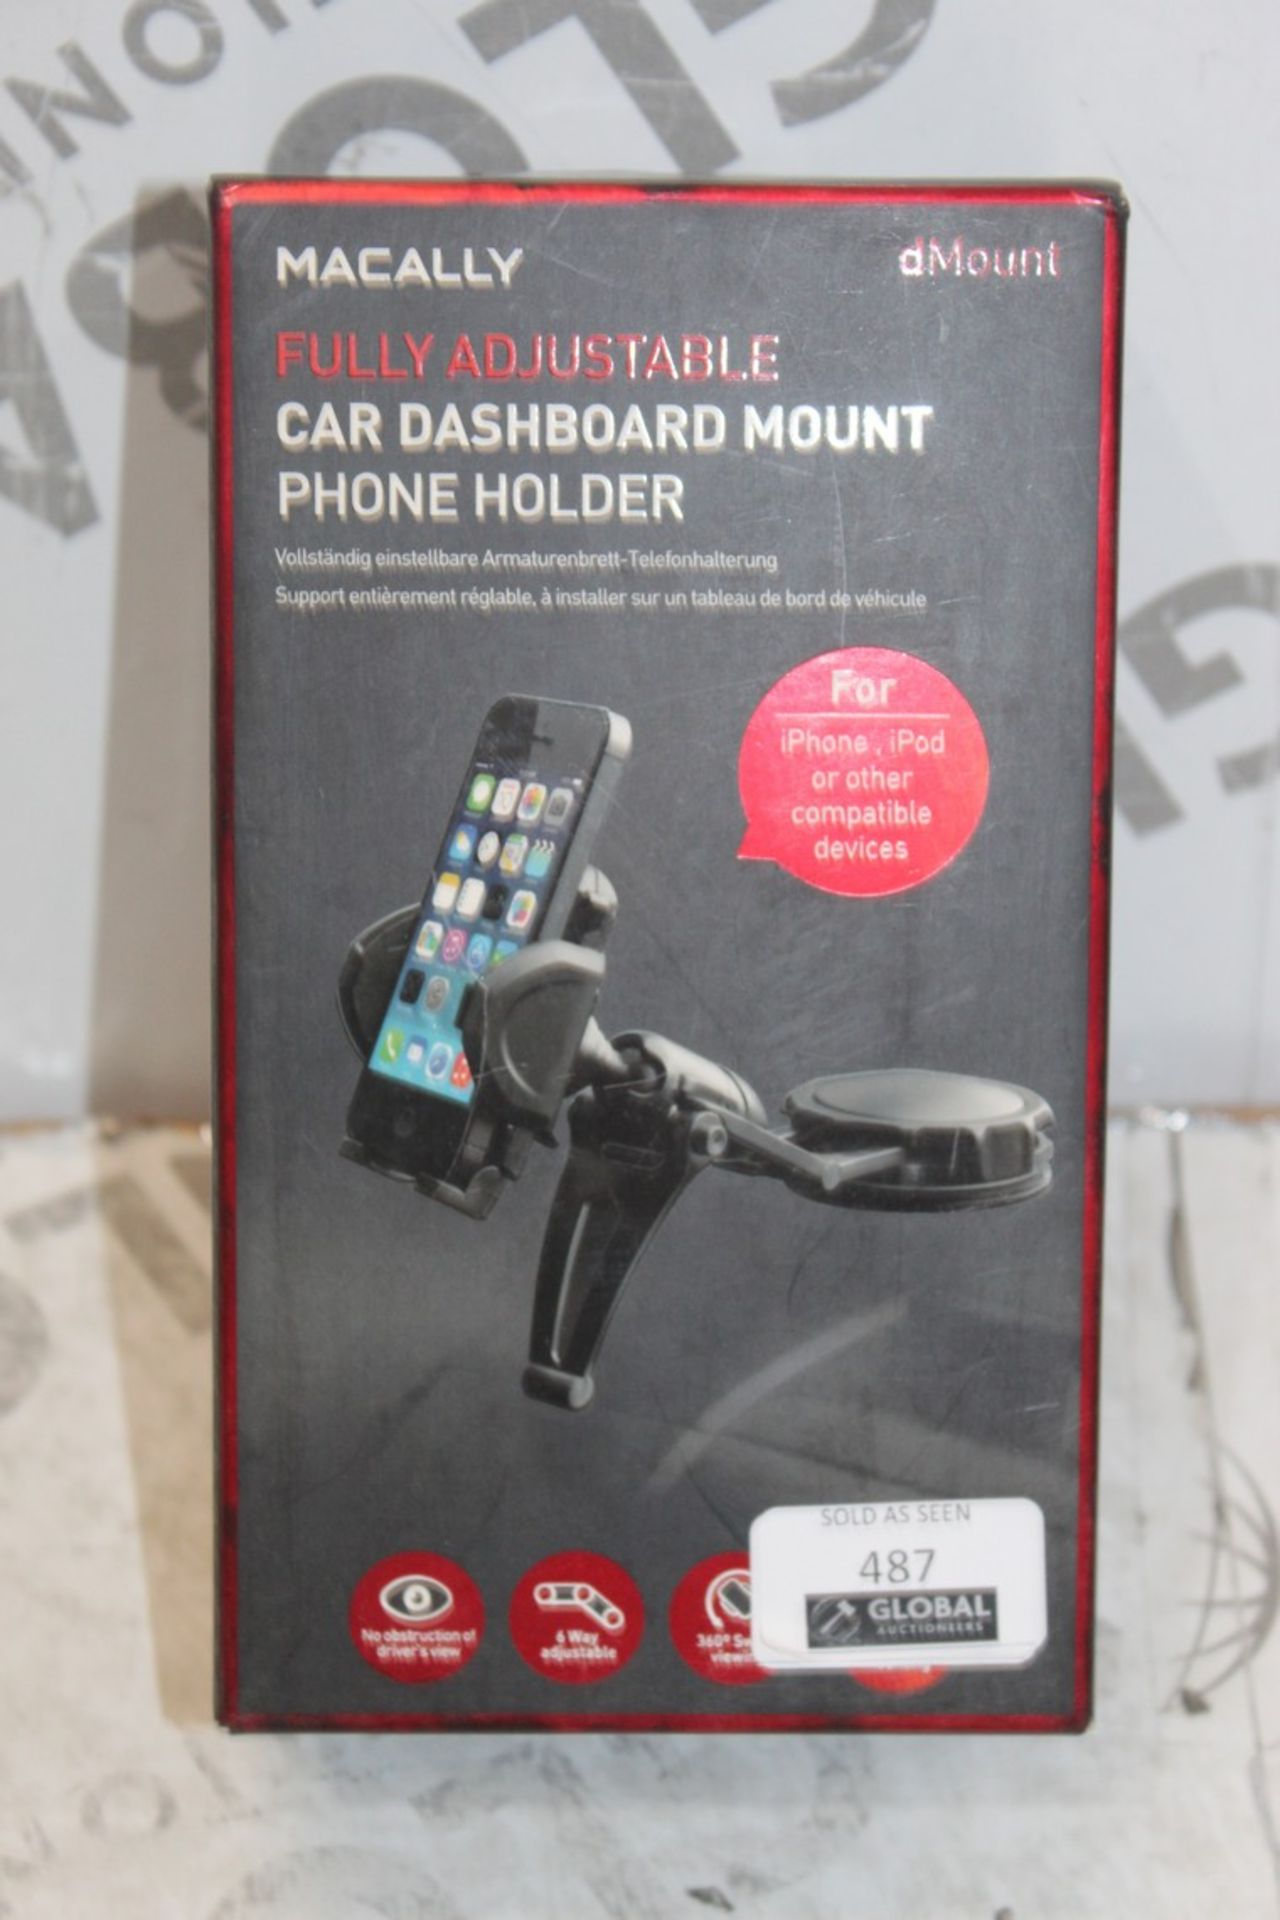 Los 487 - Boxed Macally Adjustable Universal Phone Mount Holders RRP £30 Each